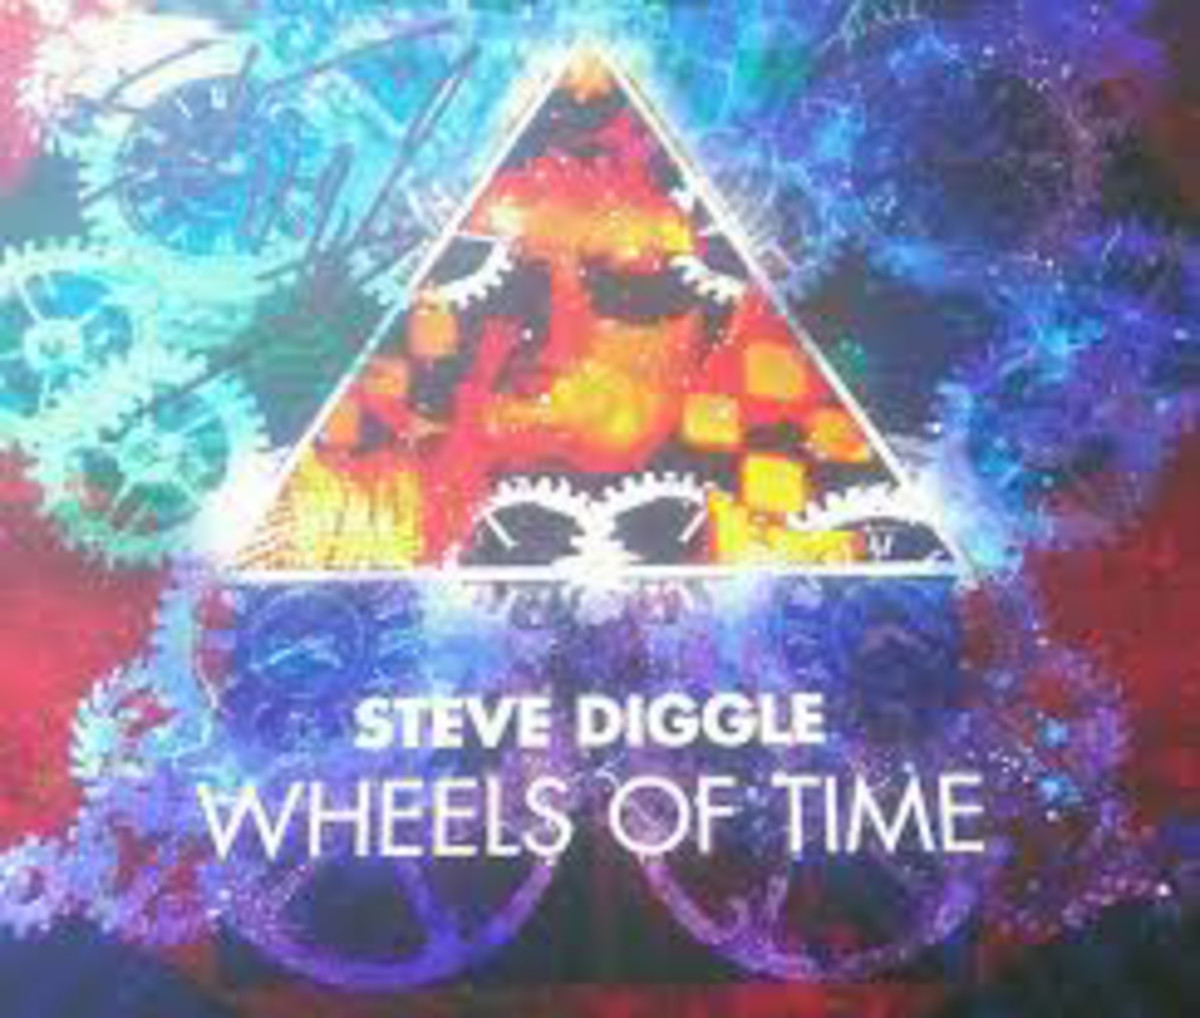 Steve Diggle, Wheels of Time box set